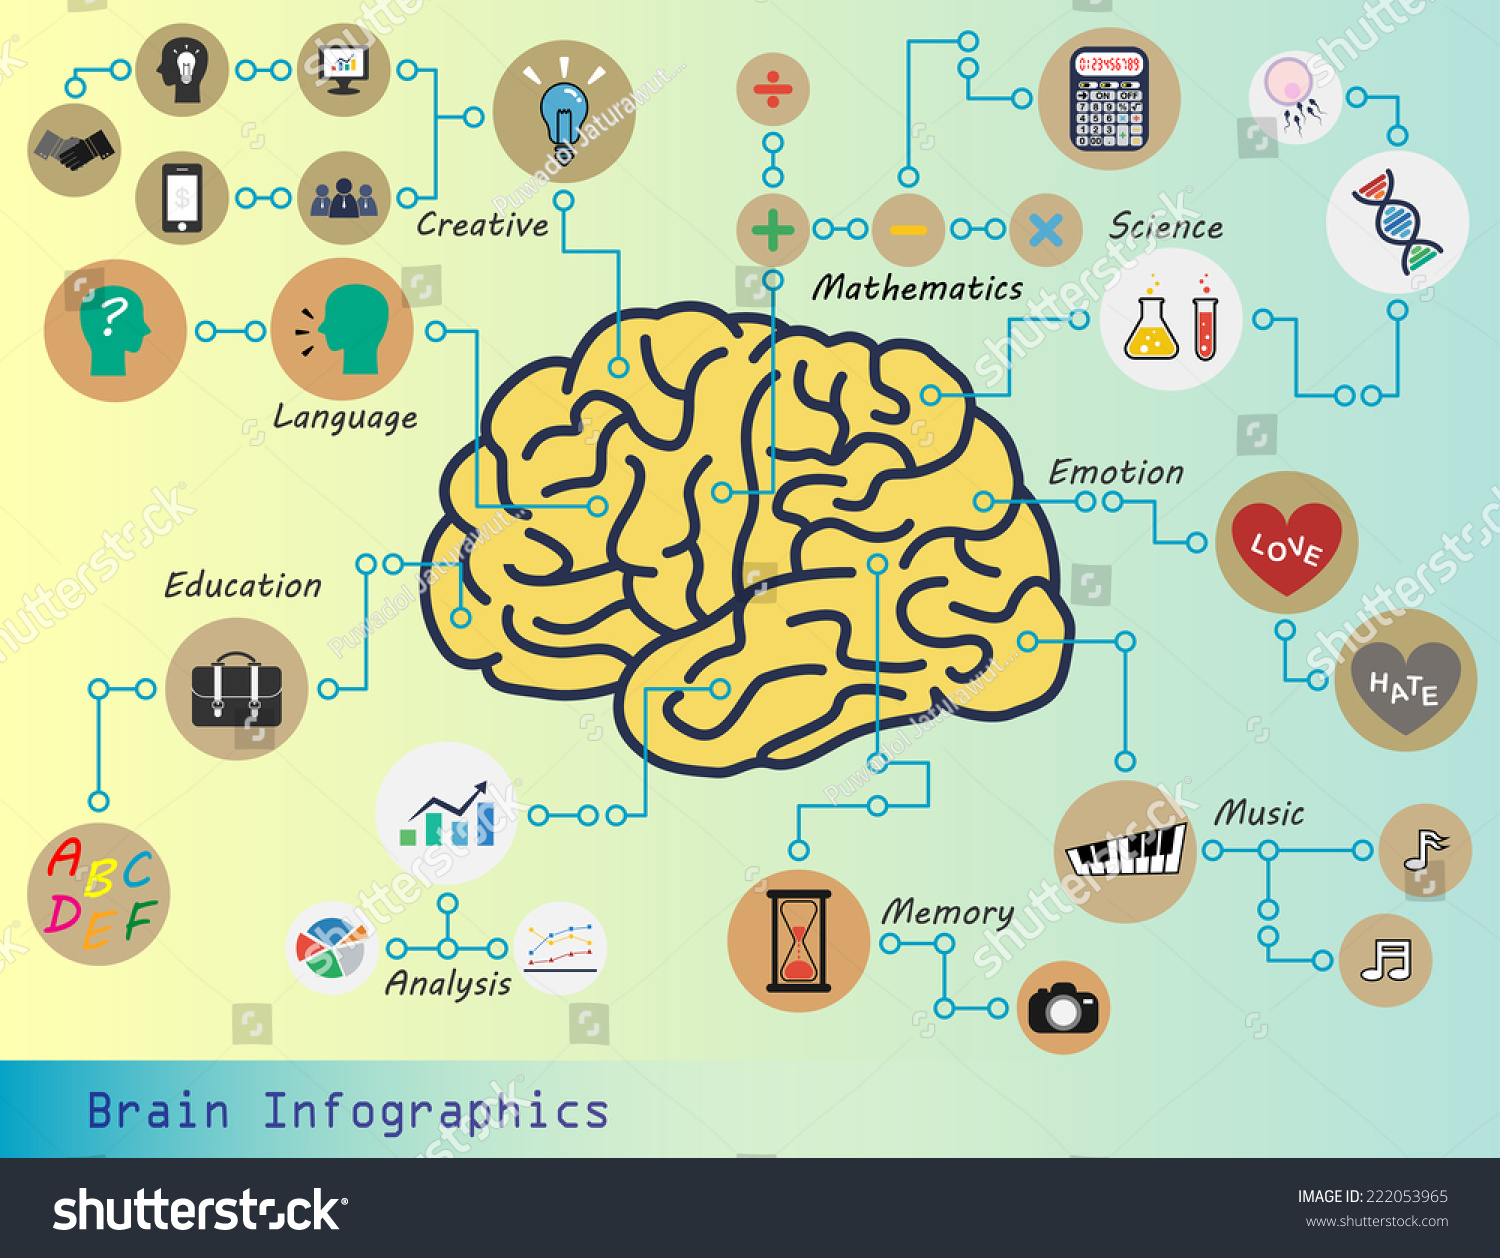 music and brain function Everything you need to know about how music affects the brain and mood, backed by science learn how music and the brain interact and change your perception.